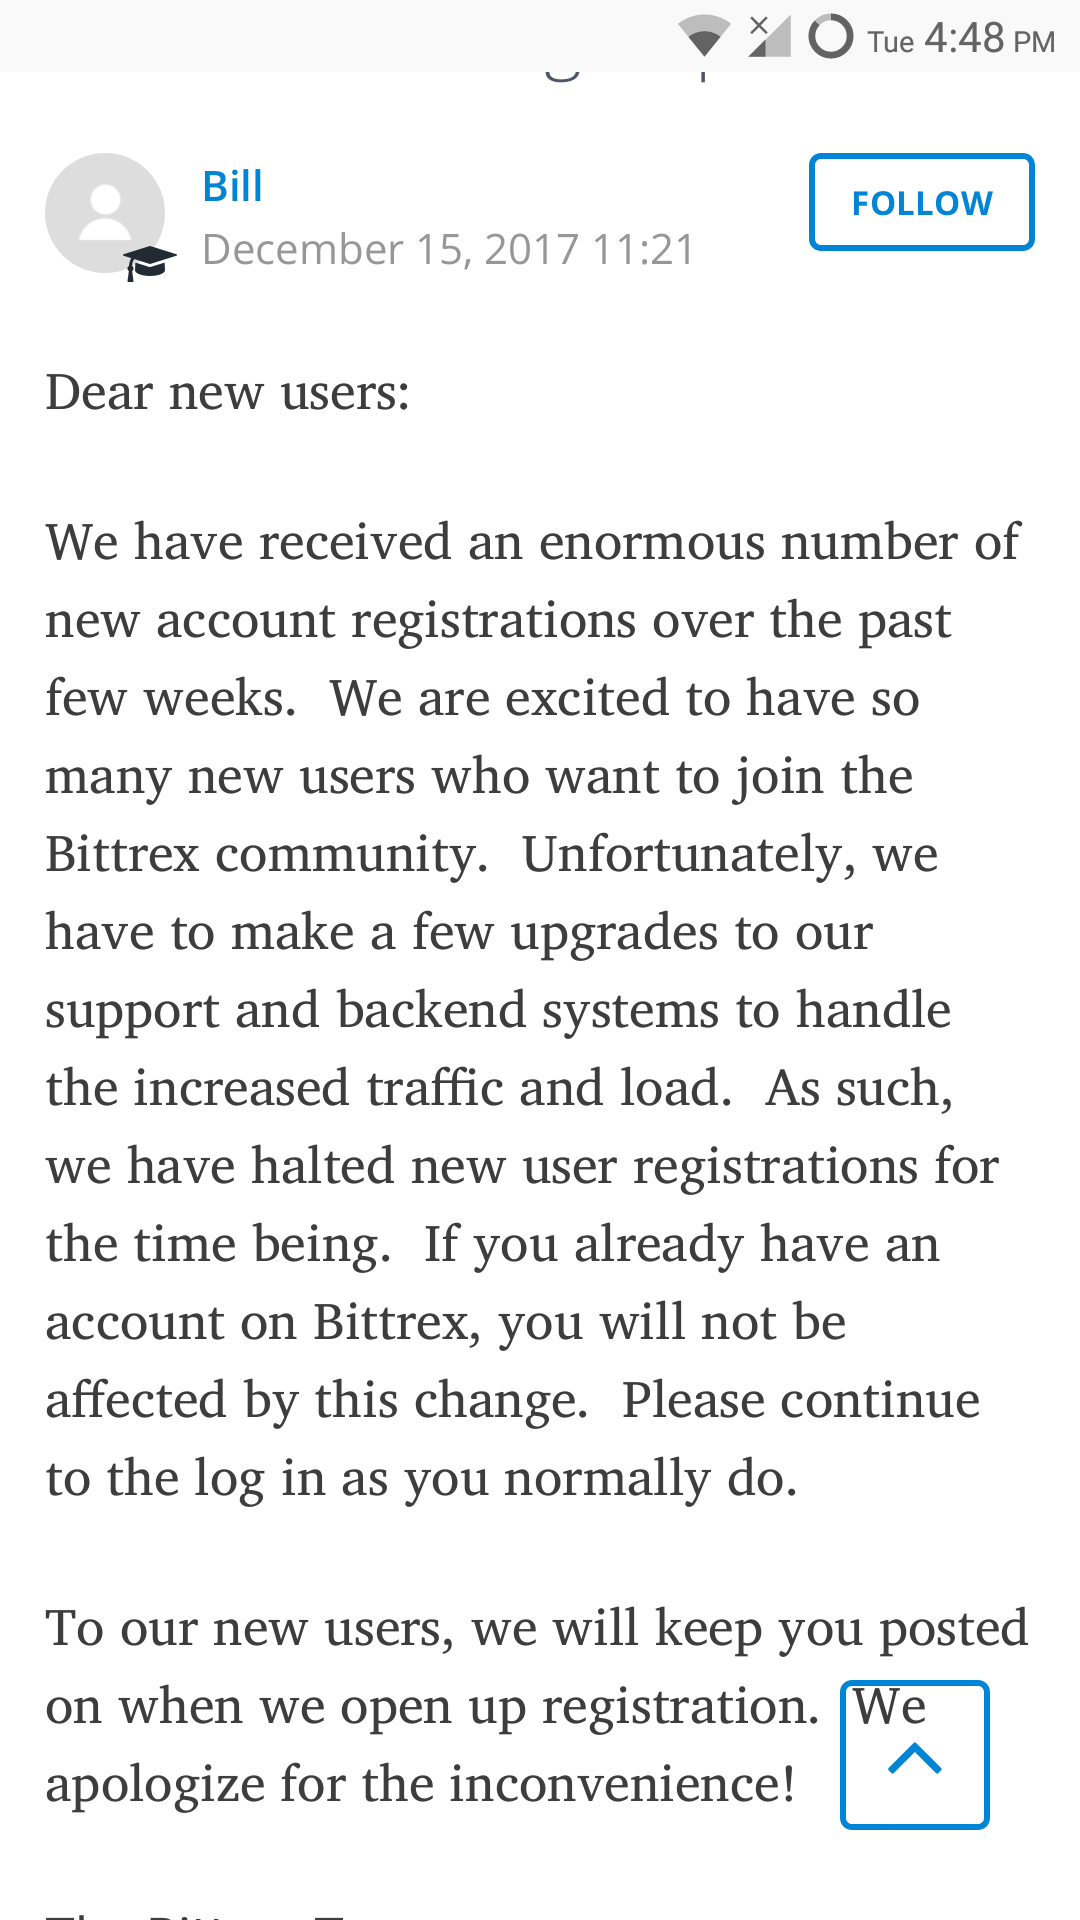 I tried to sign up for bittrex, but it looks like they're